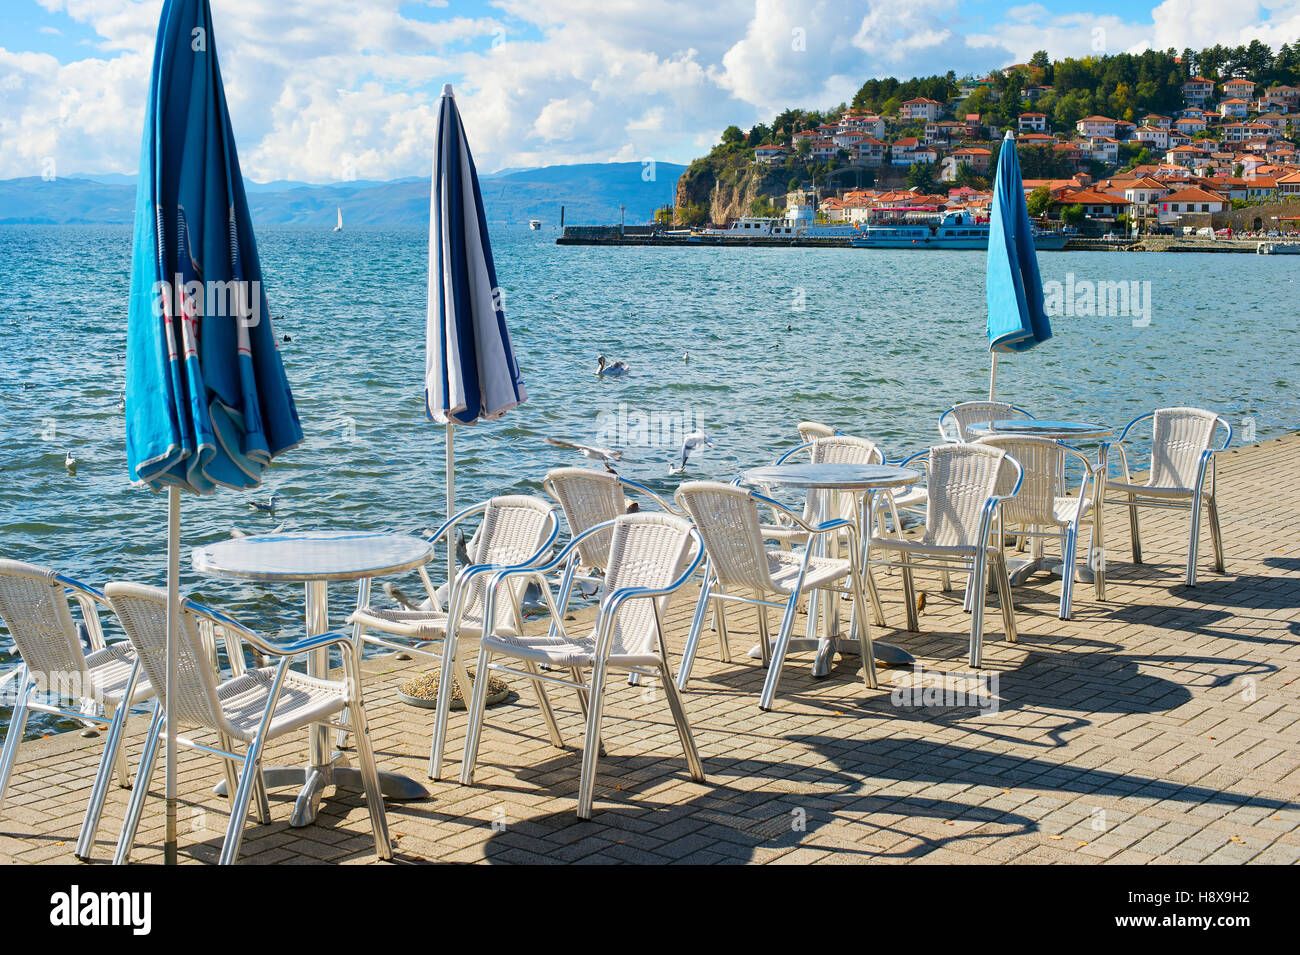 Restaurant on the embankment in the sunny day. Ohrid, Macedonia - Stock Image